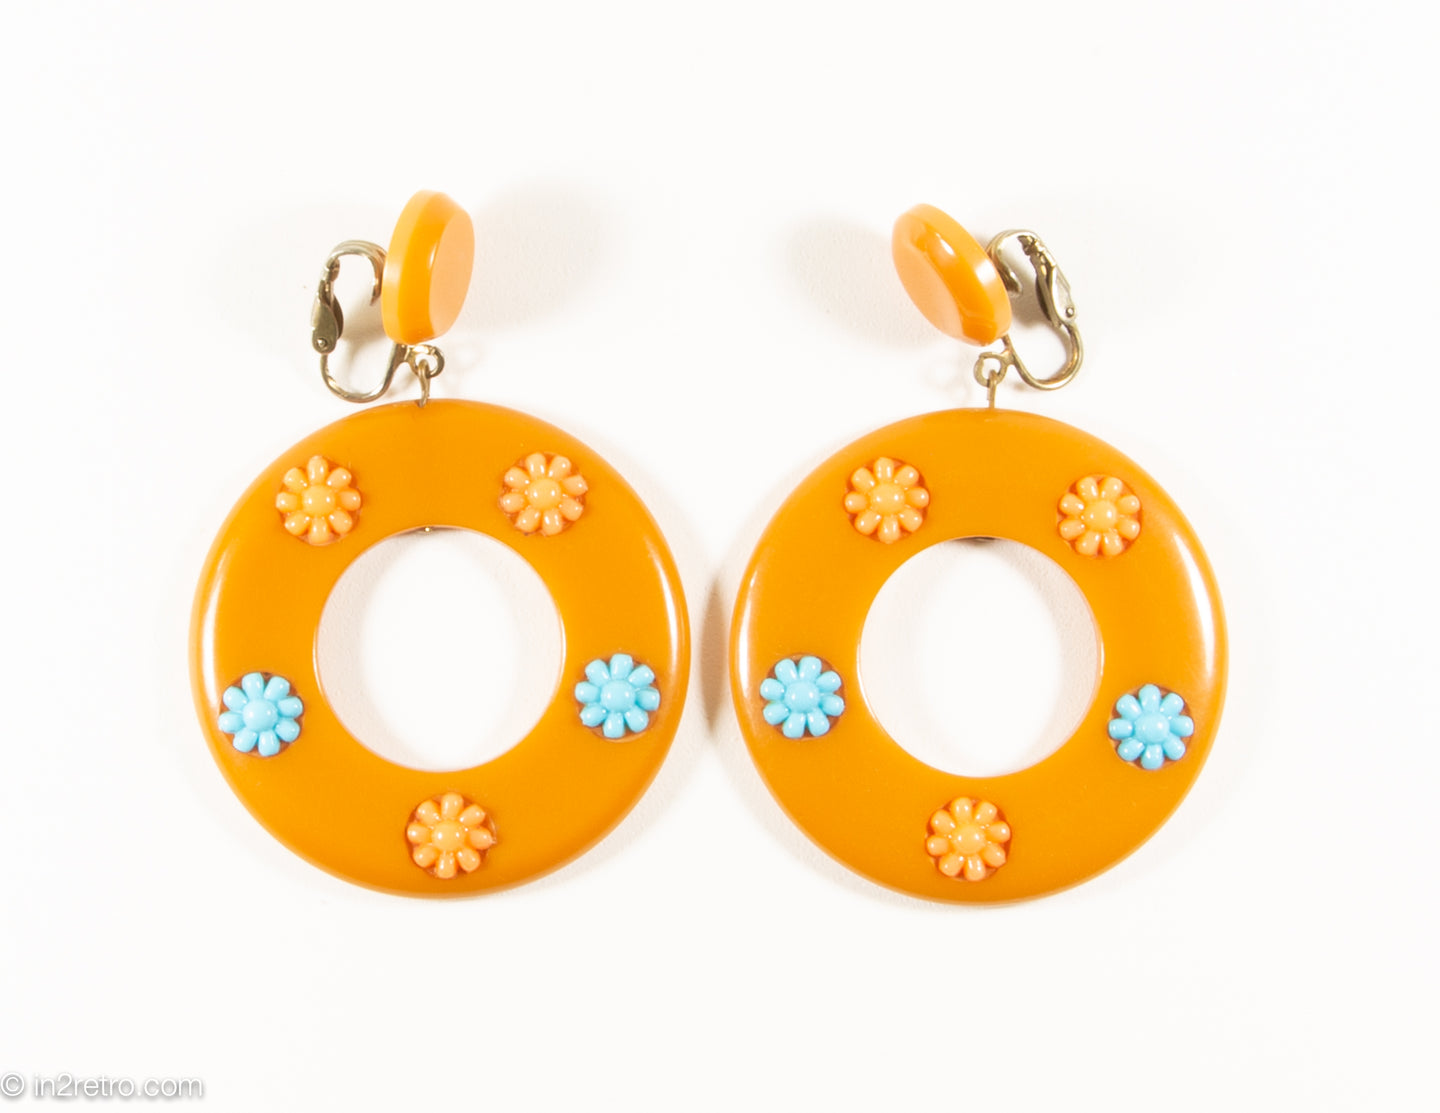 VINTAGE MOD BUTTERSCOTCH BAKELITE EMBELLISHED CLIP-ON DANGLE EARRINGS | 1960s-1970s